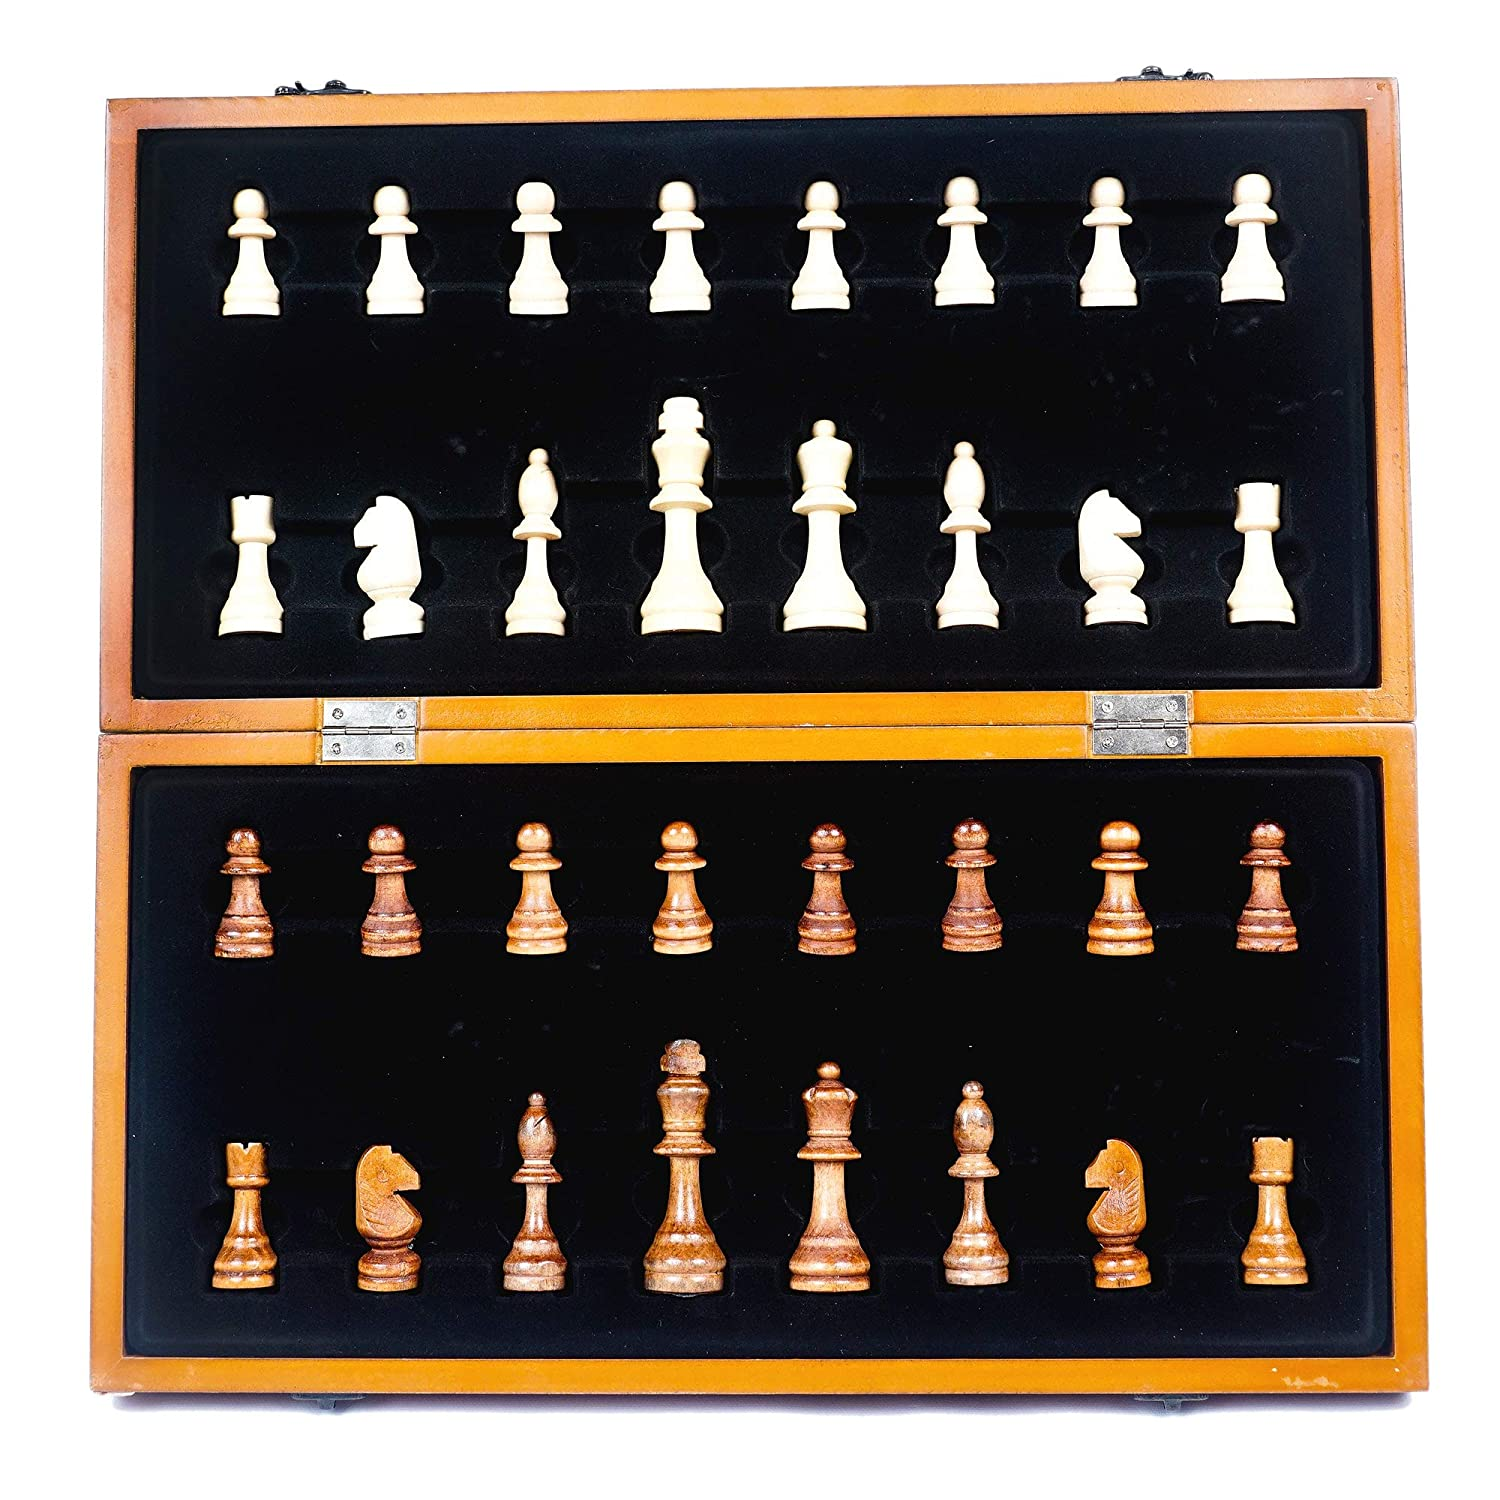 Premium Chess Board ( High Quality ) - Reasonable Rate ( Large Size Board ) - Imported